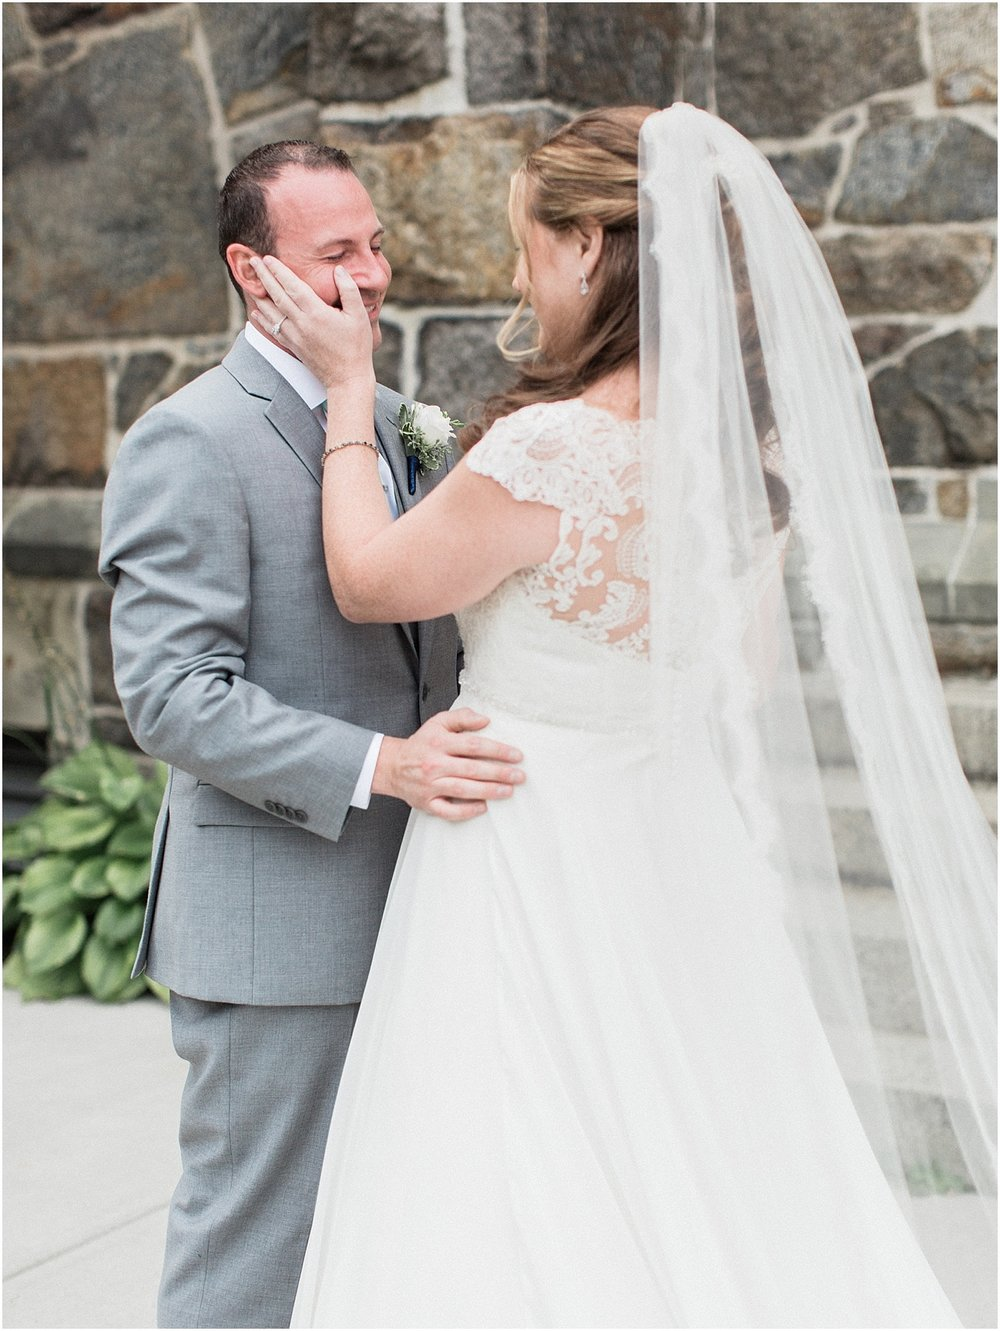 jaclyn_adam_st_ann_brendans_dorchester_southie_castle_bride_groom_venezia_waterfront__cape_cod_boston_wedding_photographer_meredith_jane_photography_photo_0895.jpg